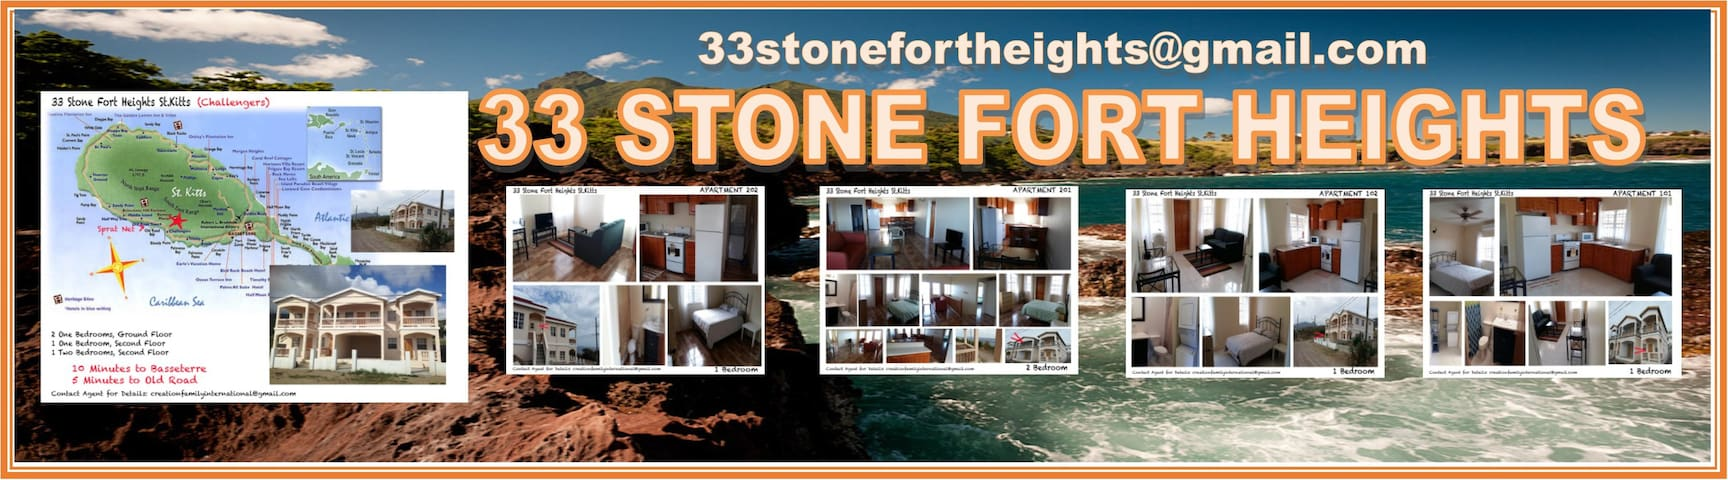 Stone Fort Heights - St. Kitts Haven Apartment#201